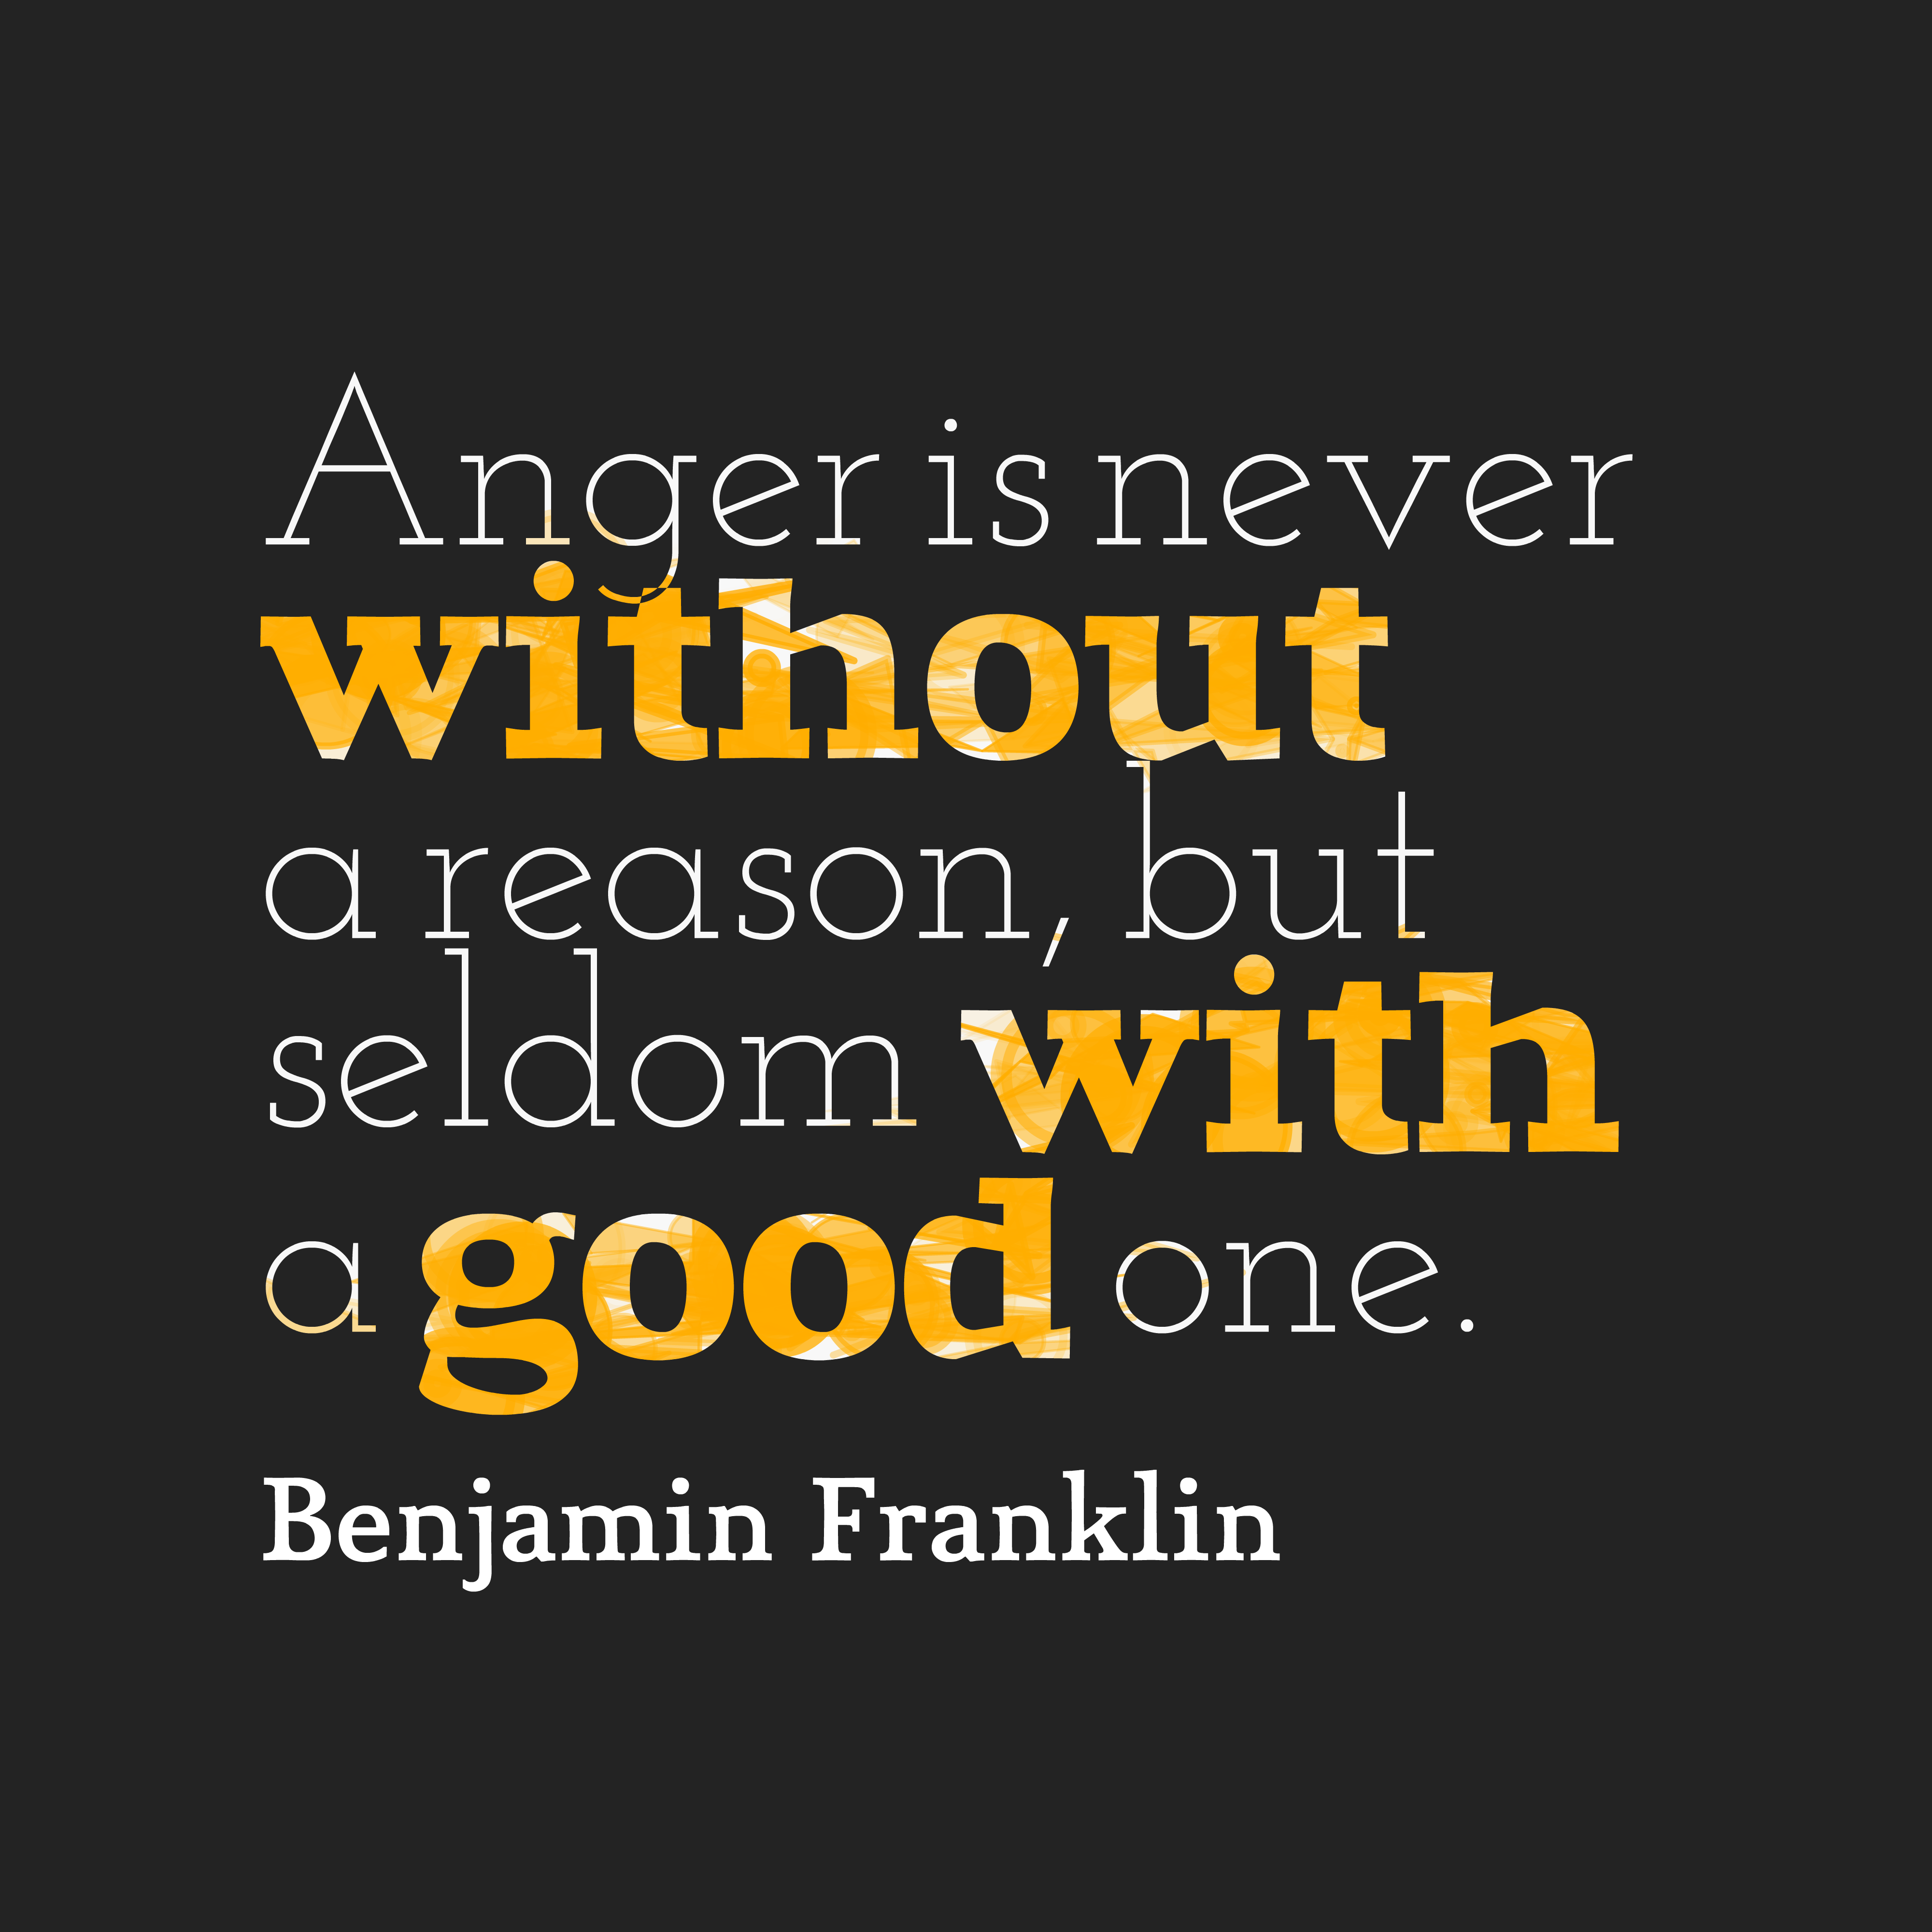 Quotes About Anger And Rage: Angry Relationship Quotes. QuotesGram